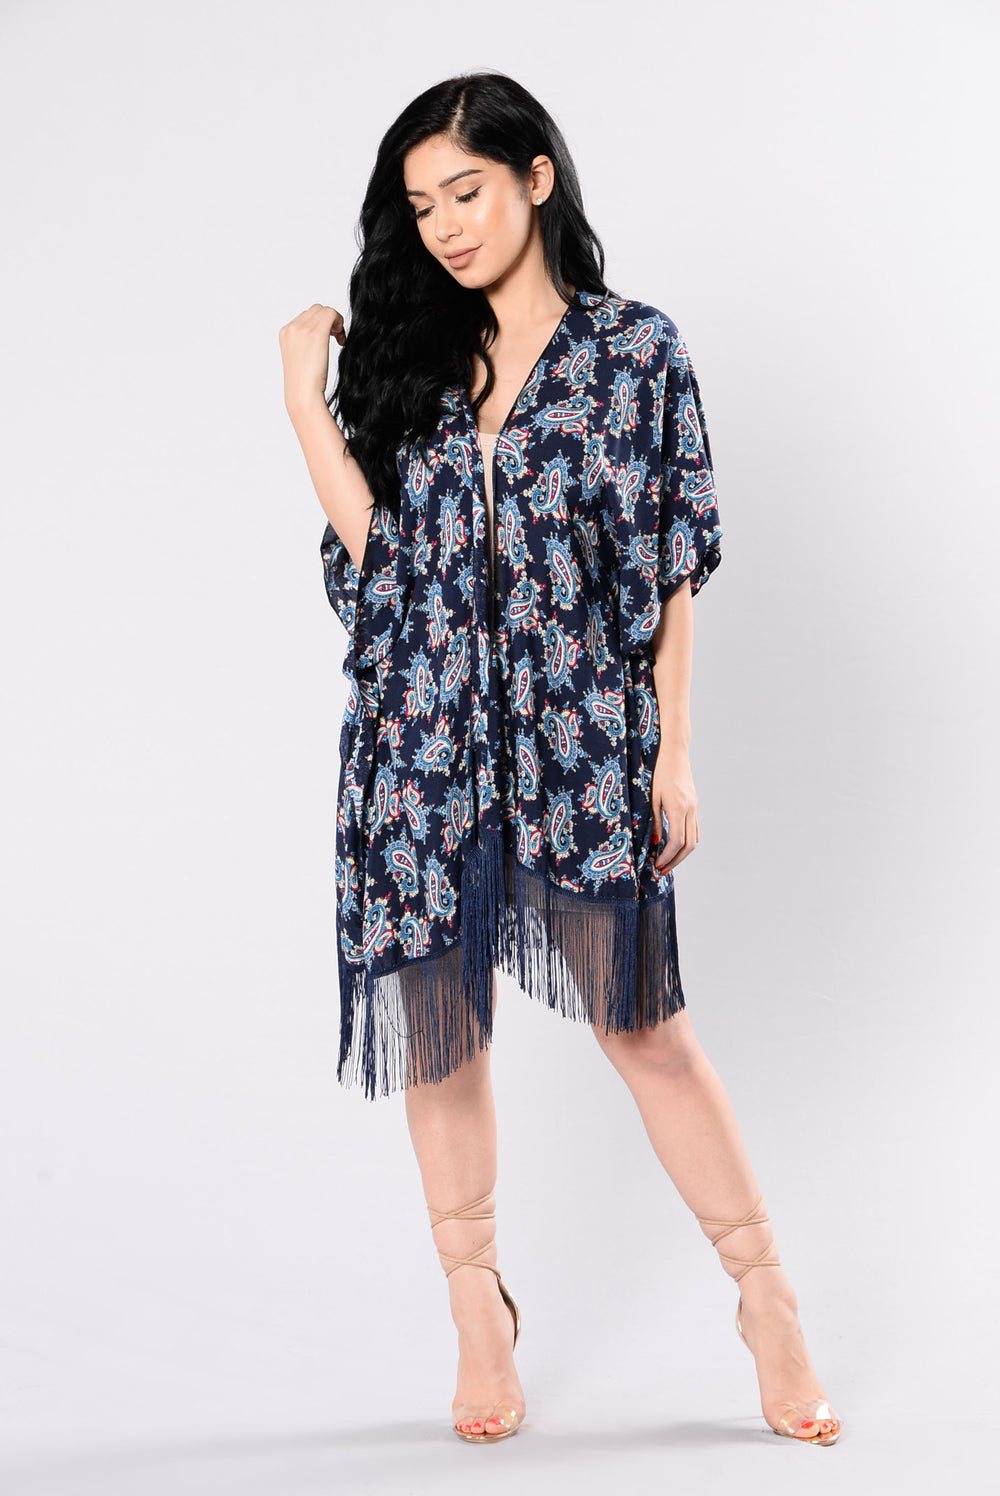 Flowers In Your Hair Kimono - Navy/Black